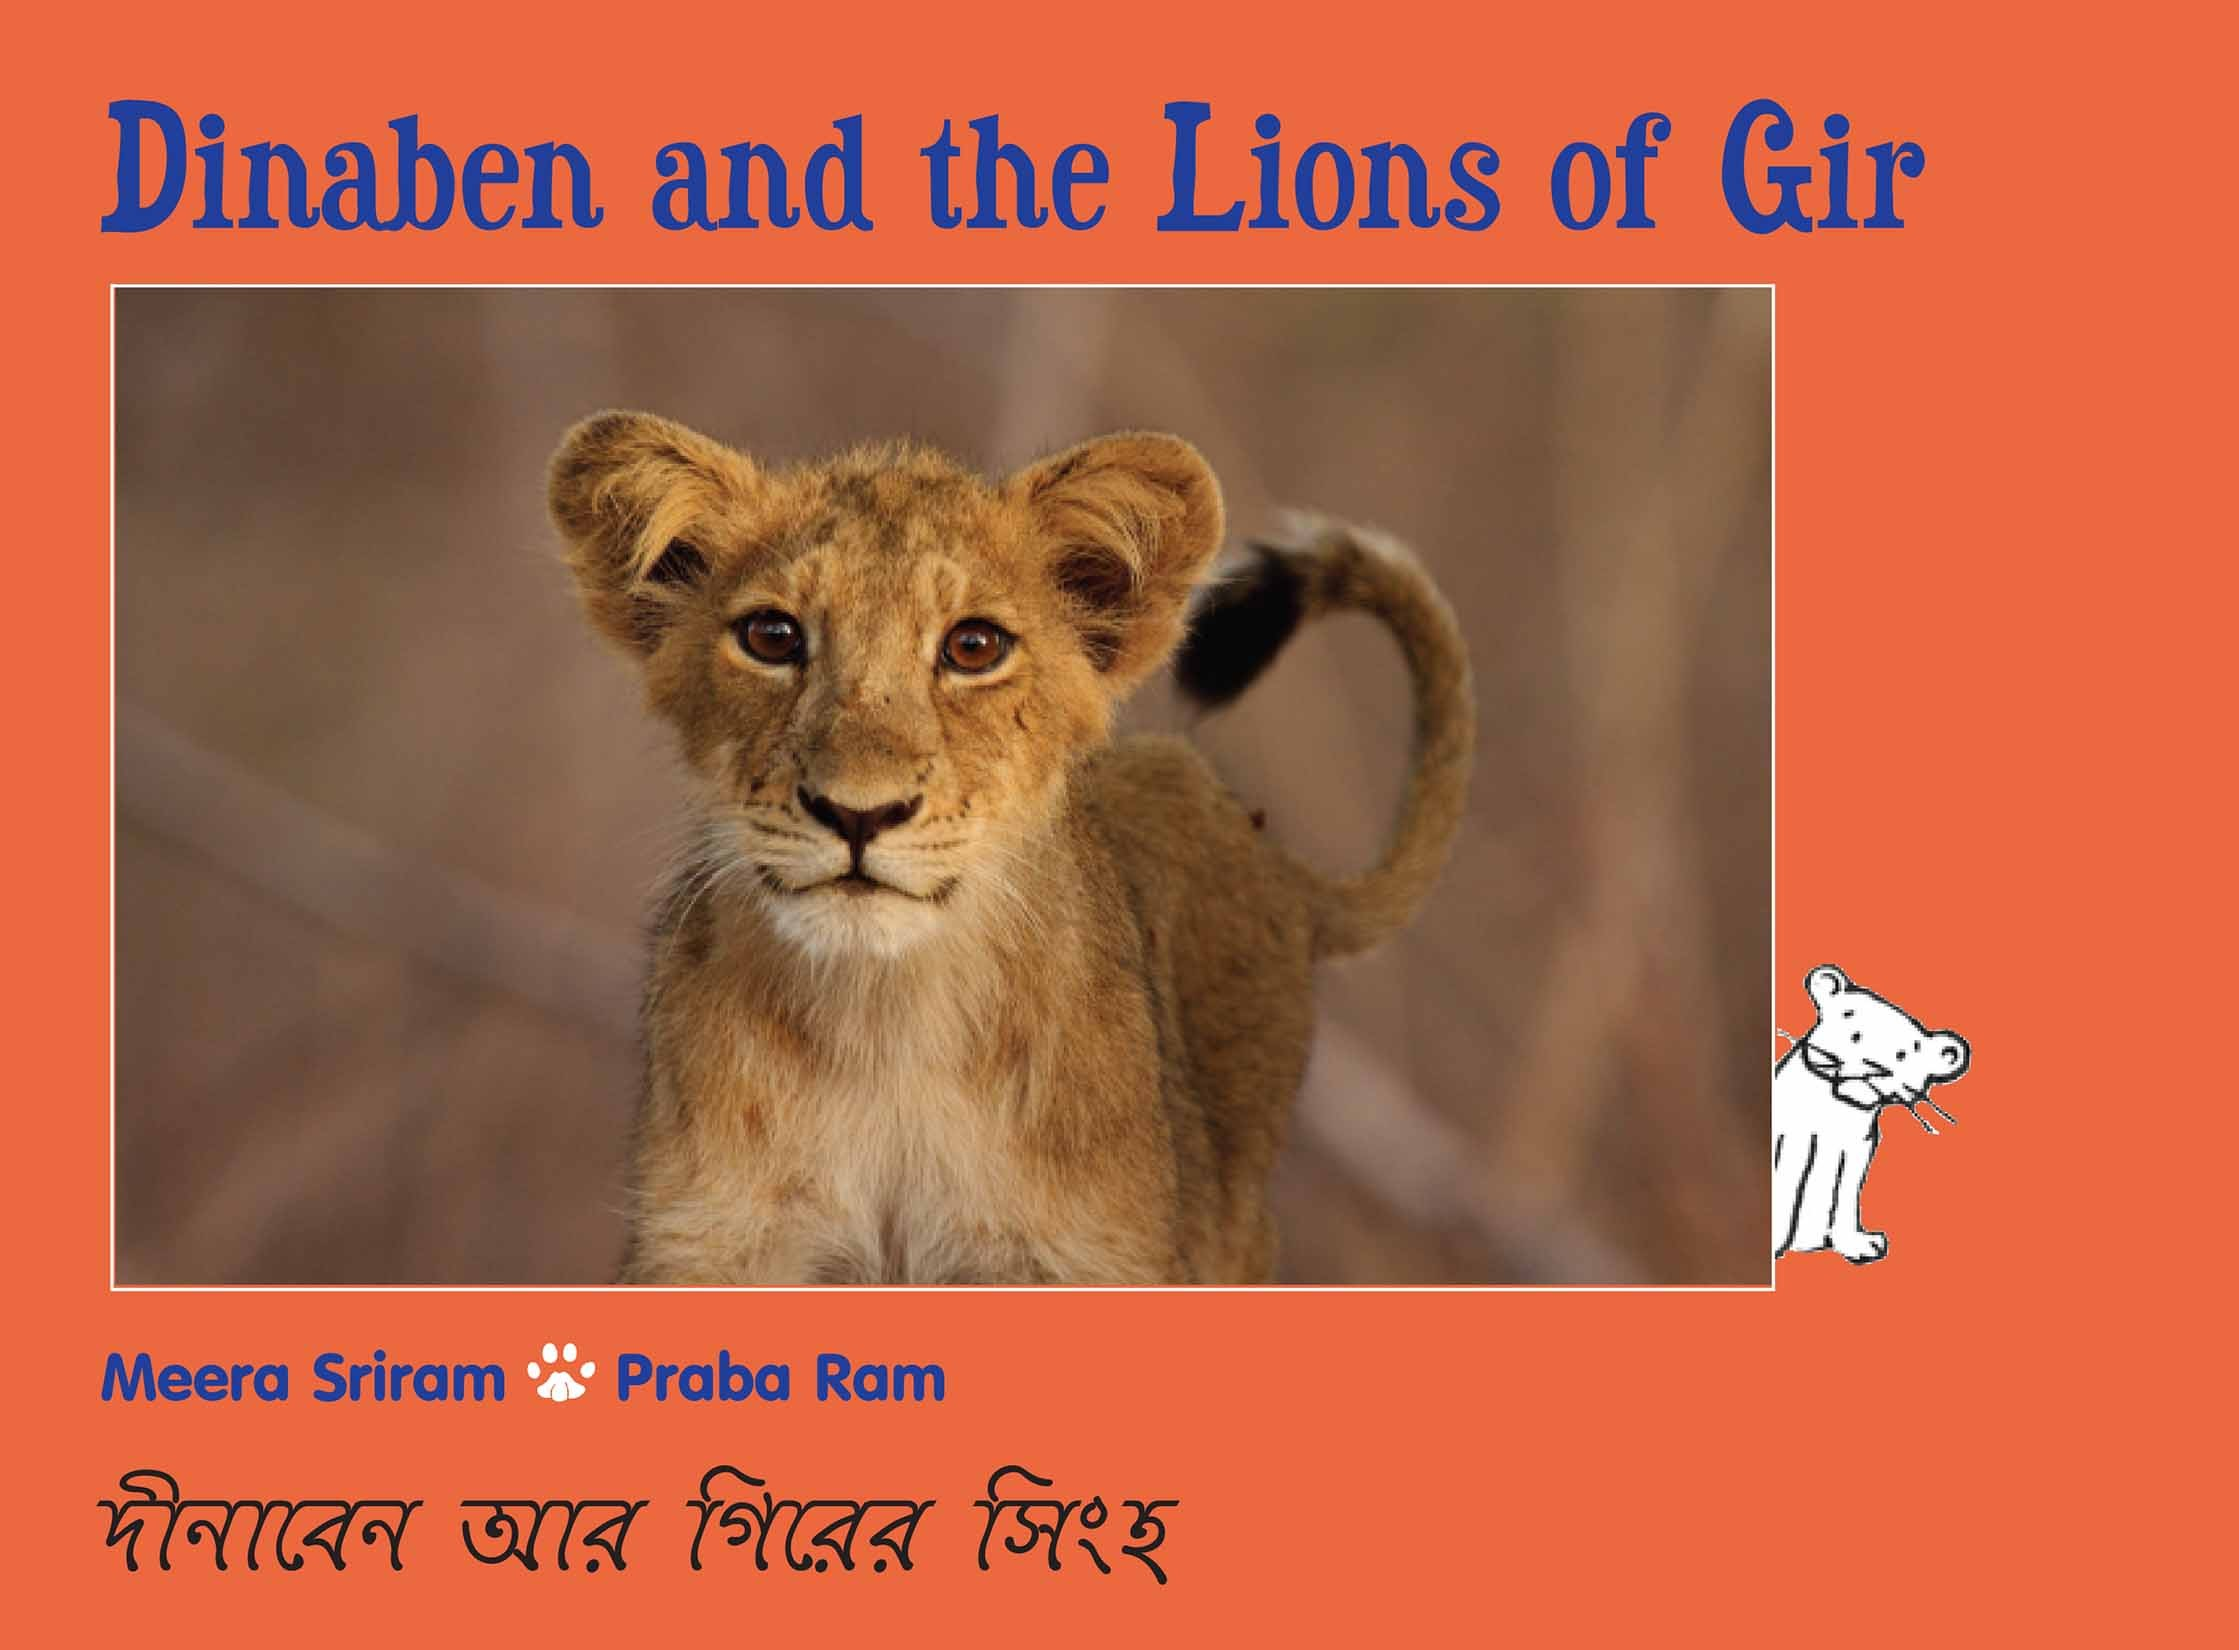 Dinaben And The Lions Of Gir/Dinaben Aar Girer Singho (English-Bengali)